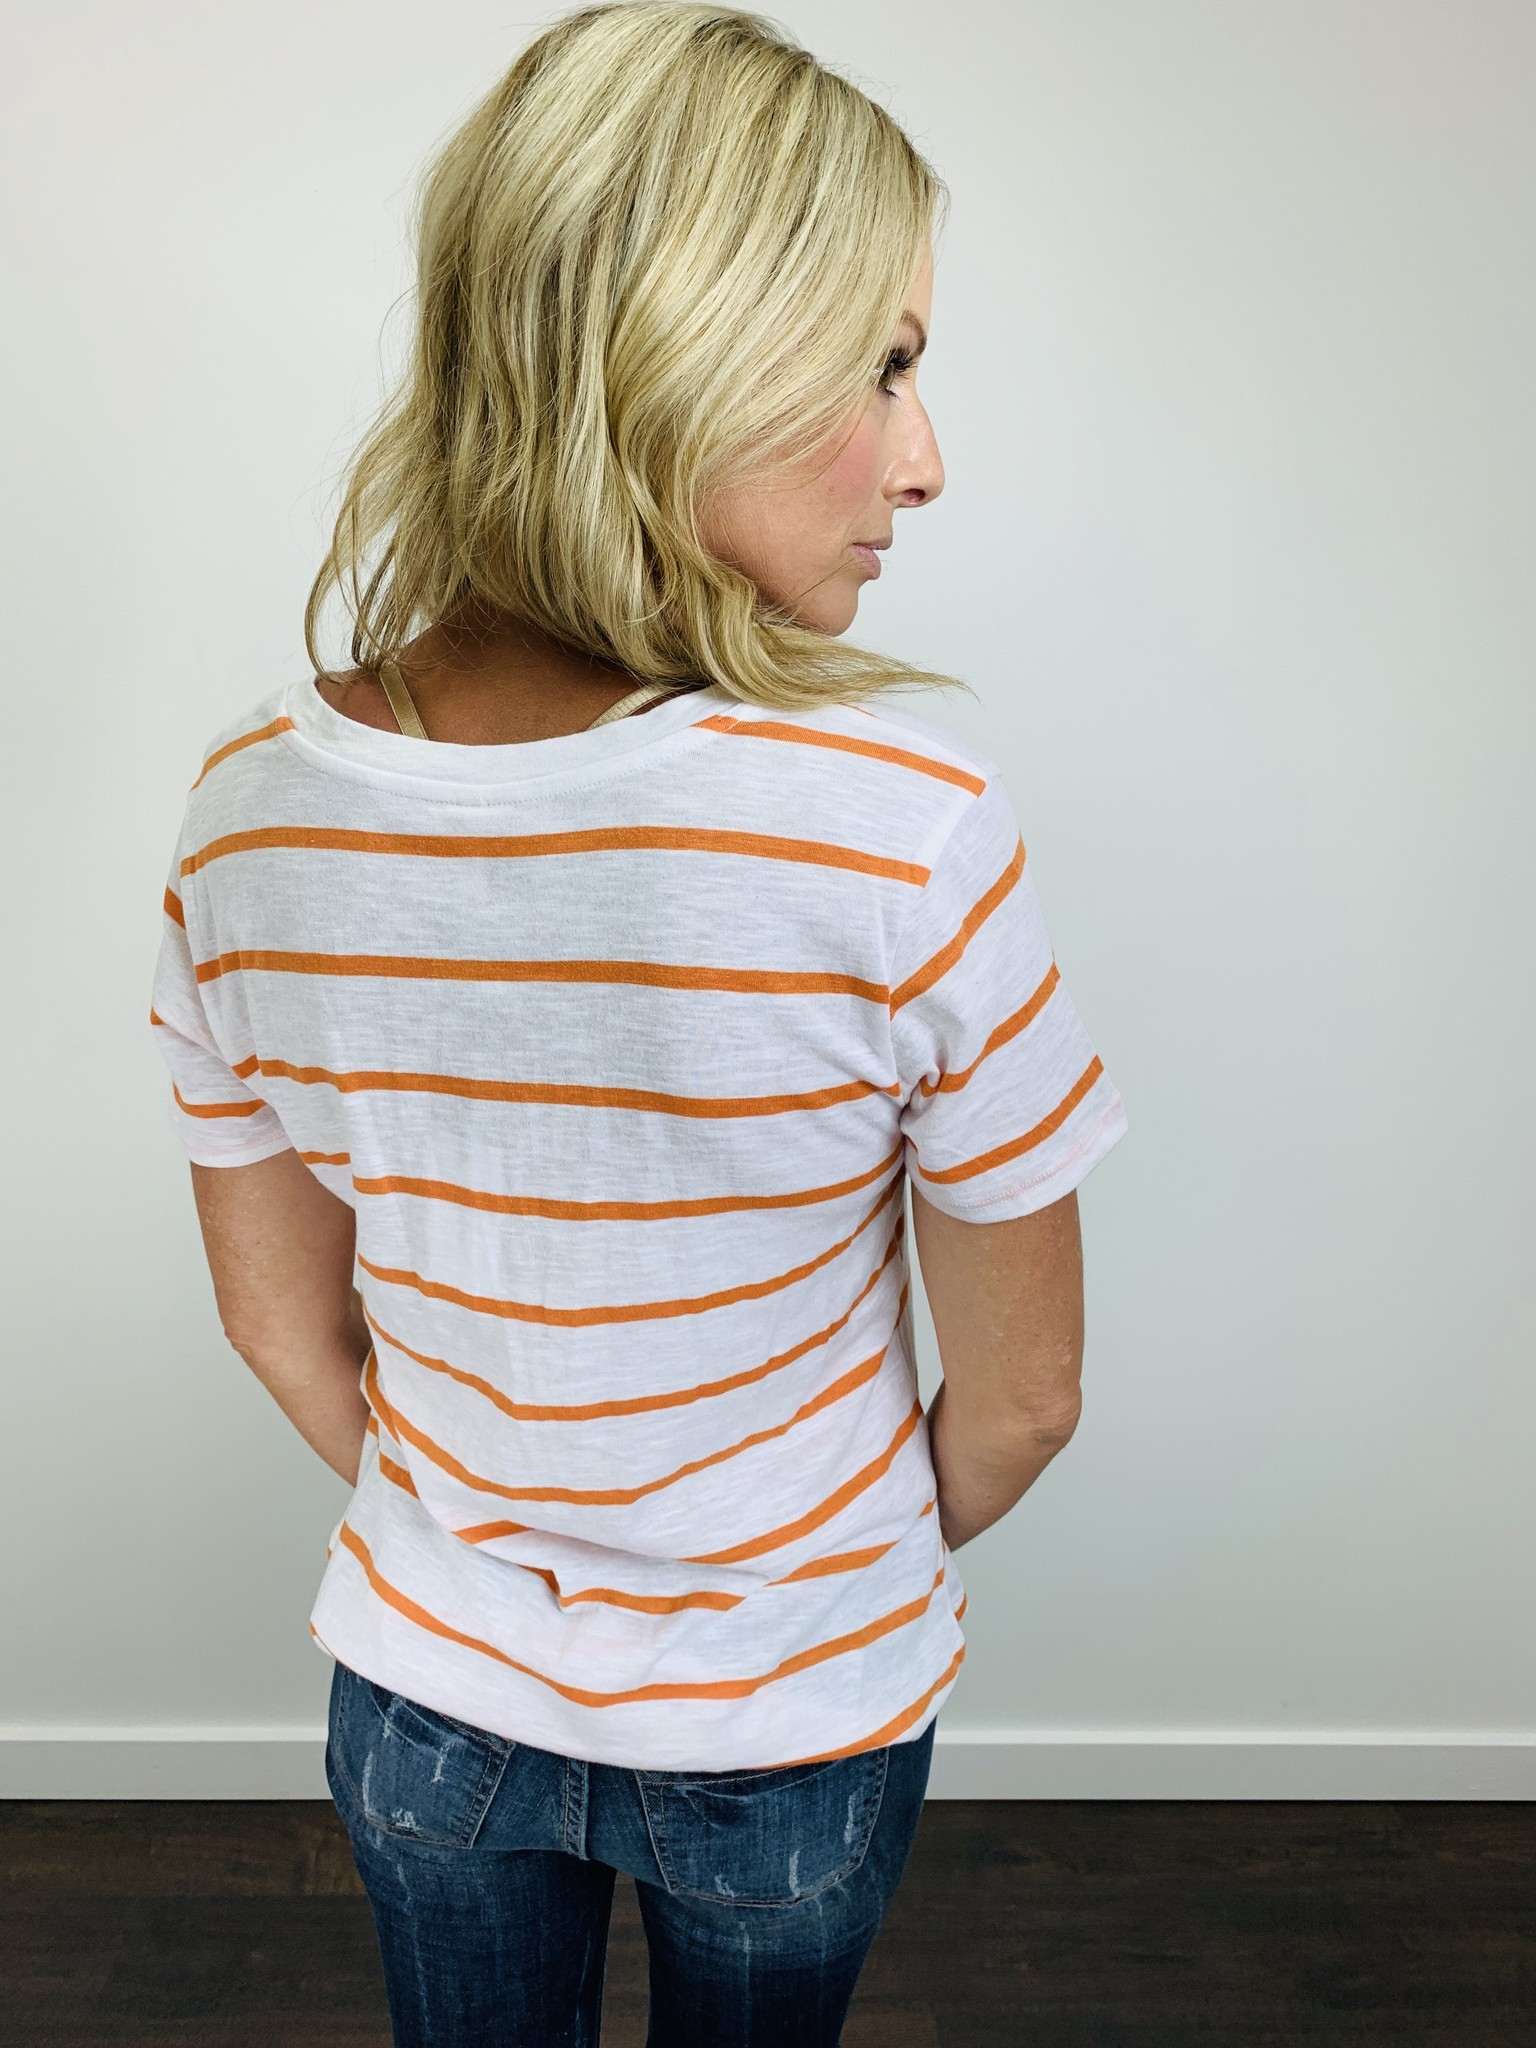 ZSupply The Vienna V-Neck Tee in Jaffa Orange